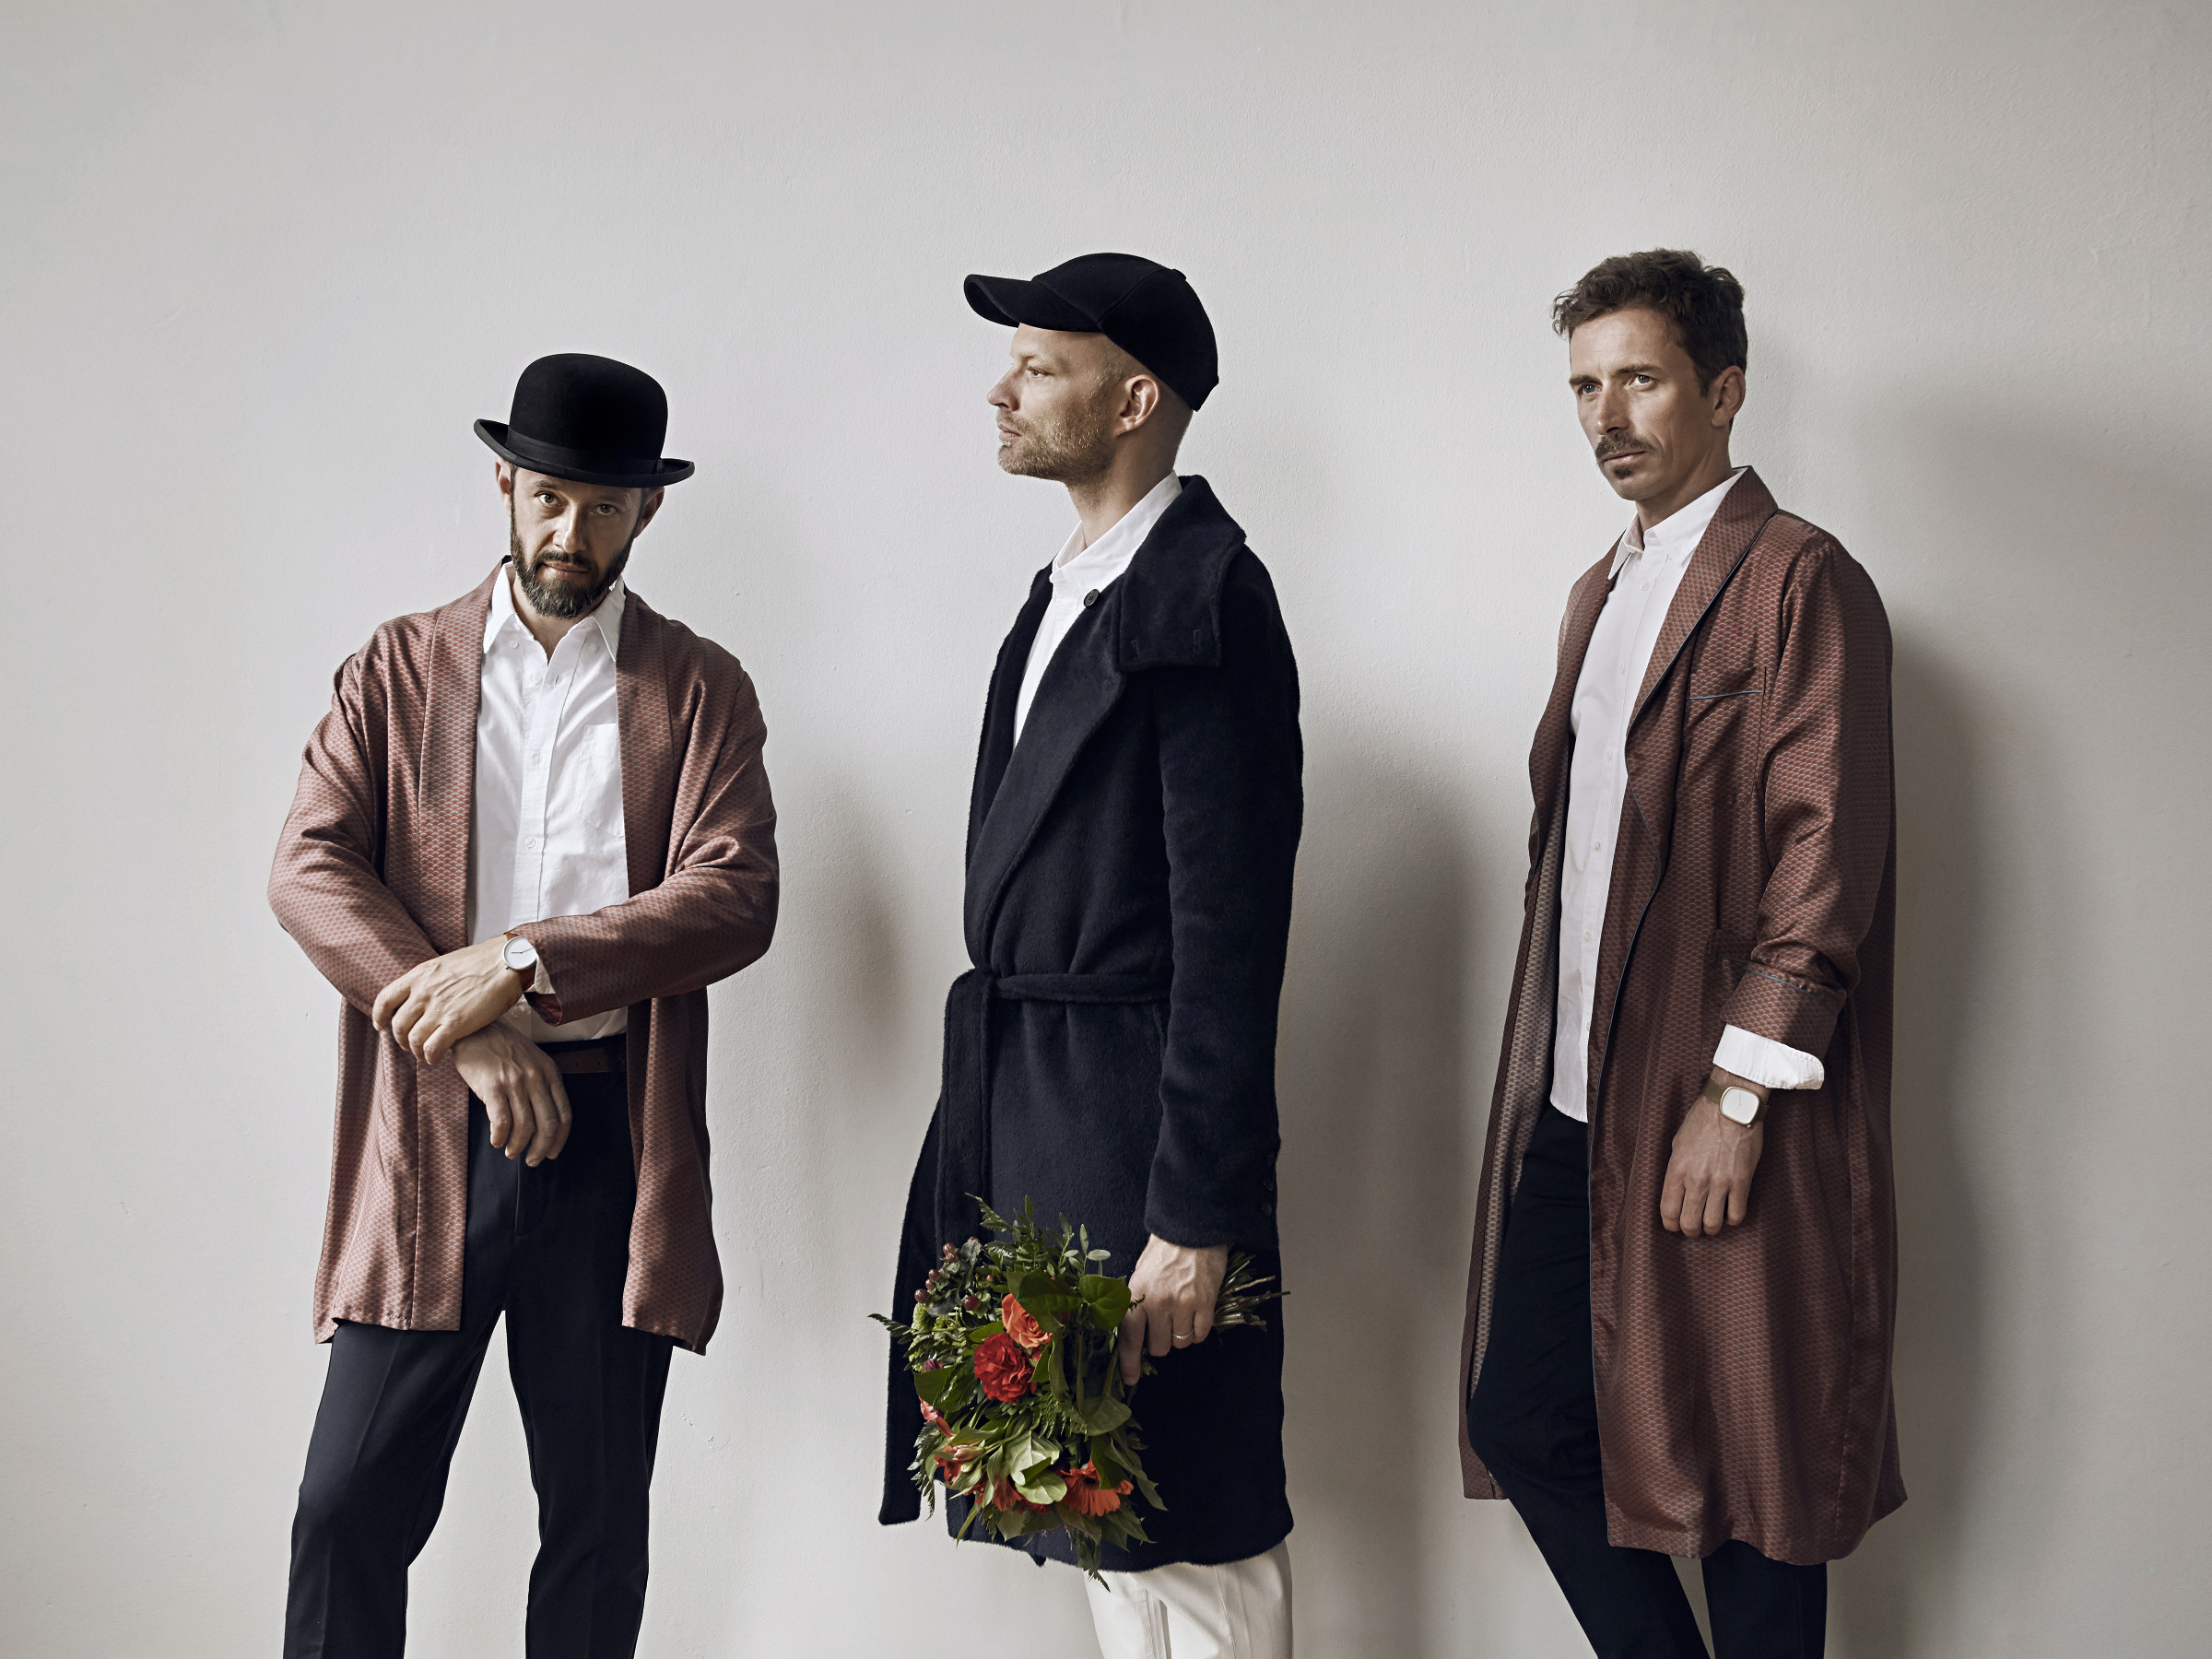 Preview: WhoMadeWho & Blond // detektor.fm